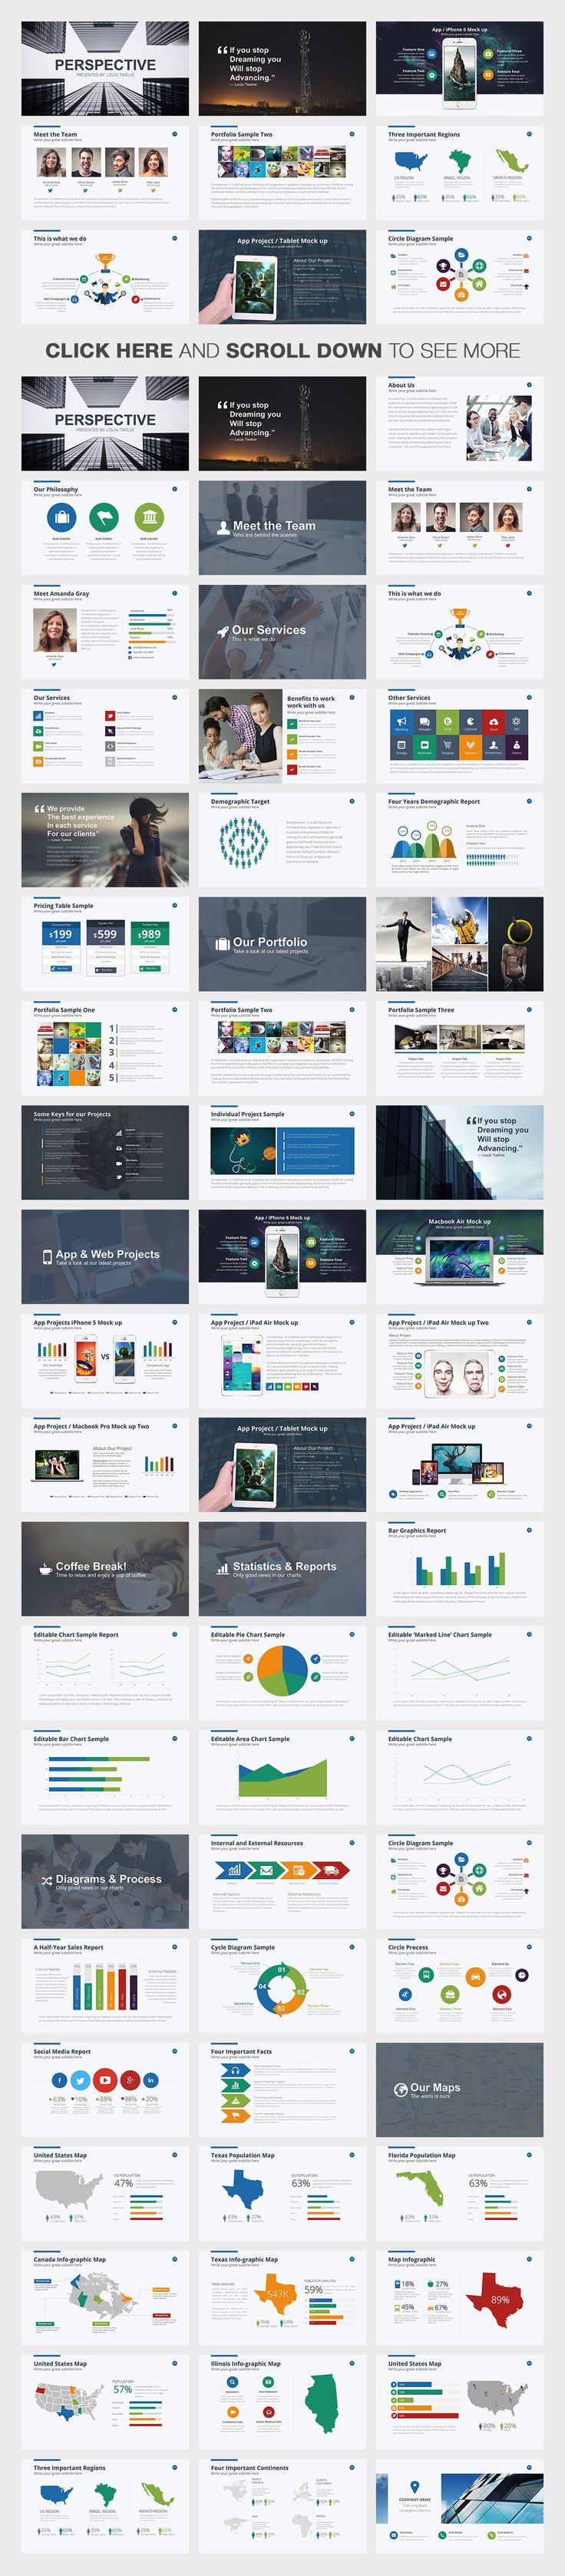 Perspective | Powerpoint Template by Louis Twelve on Creative Market